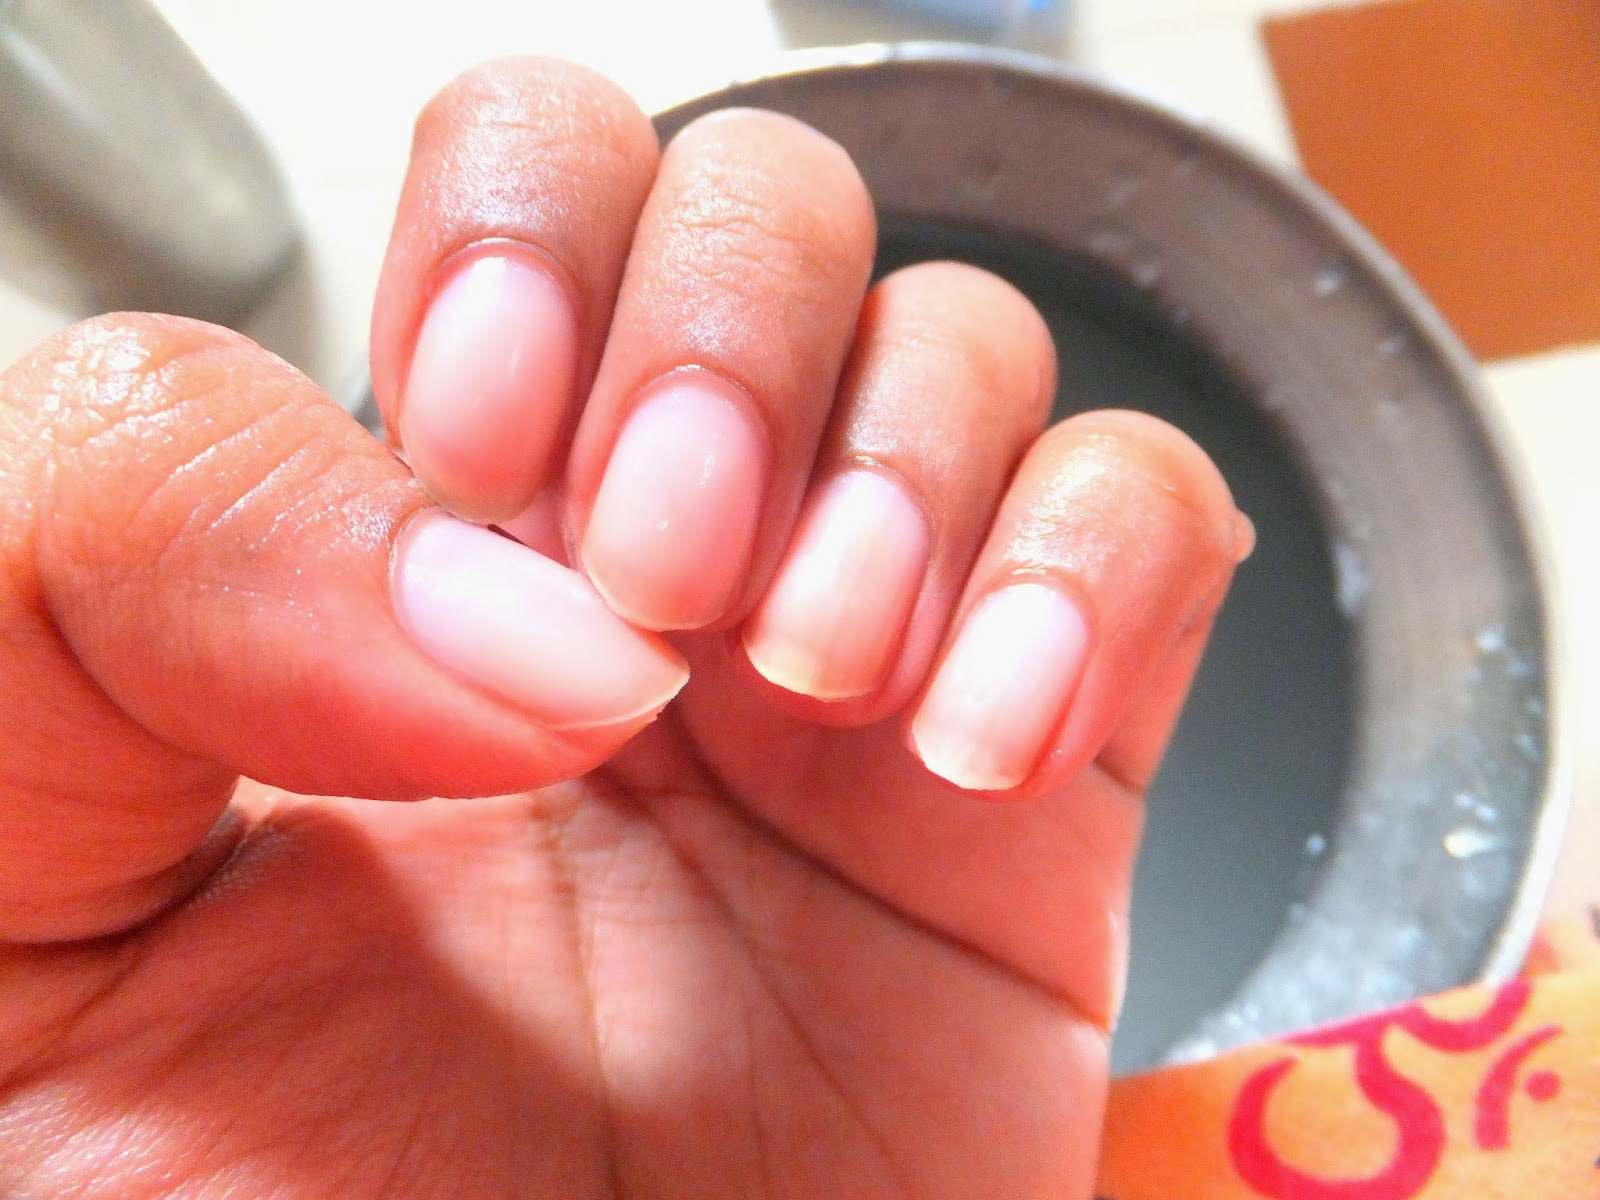 Closet Confessions: Nail Care- Important or Not?